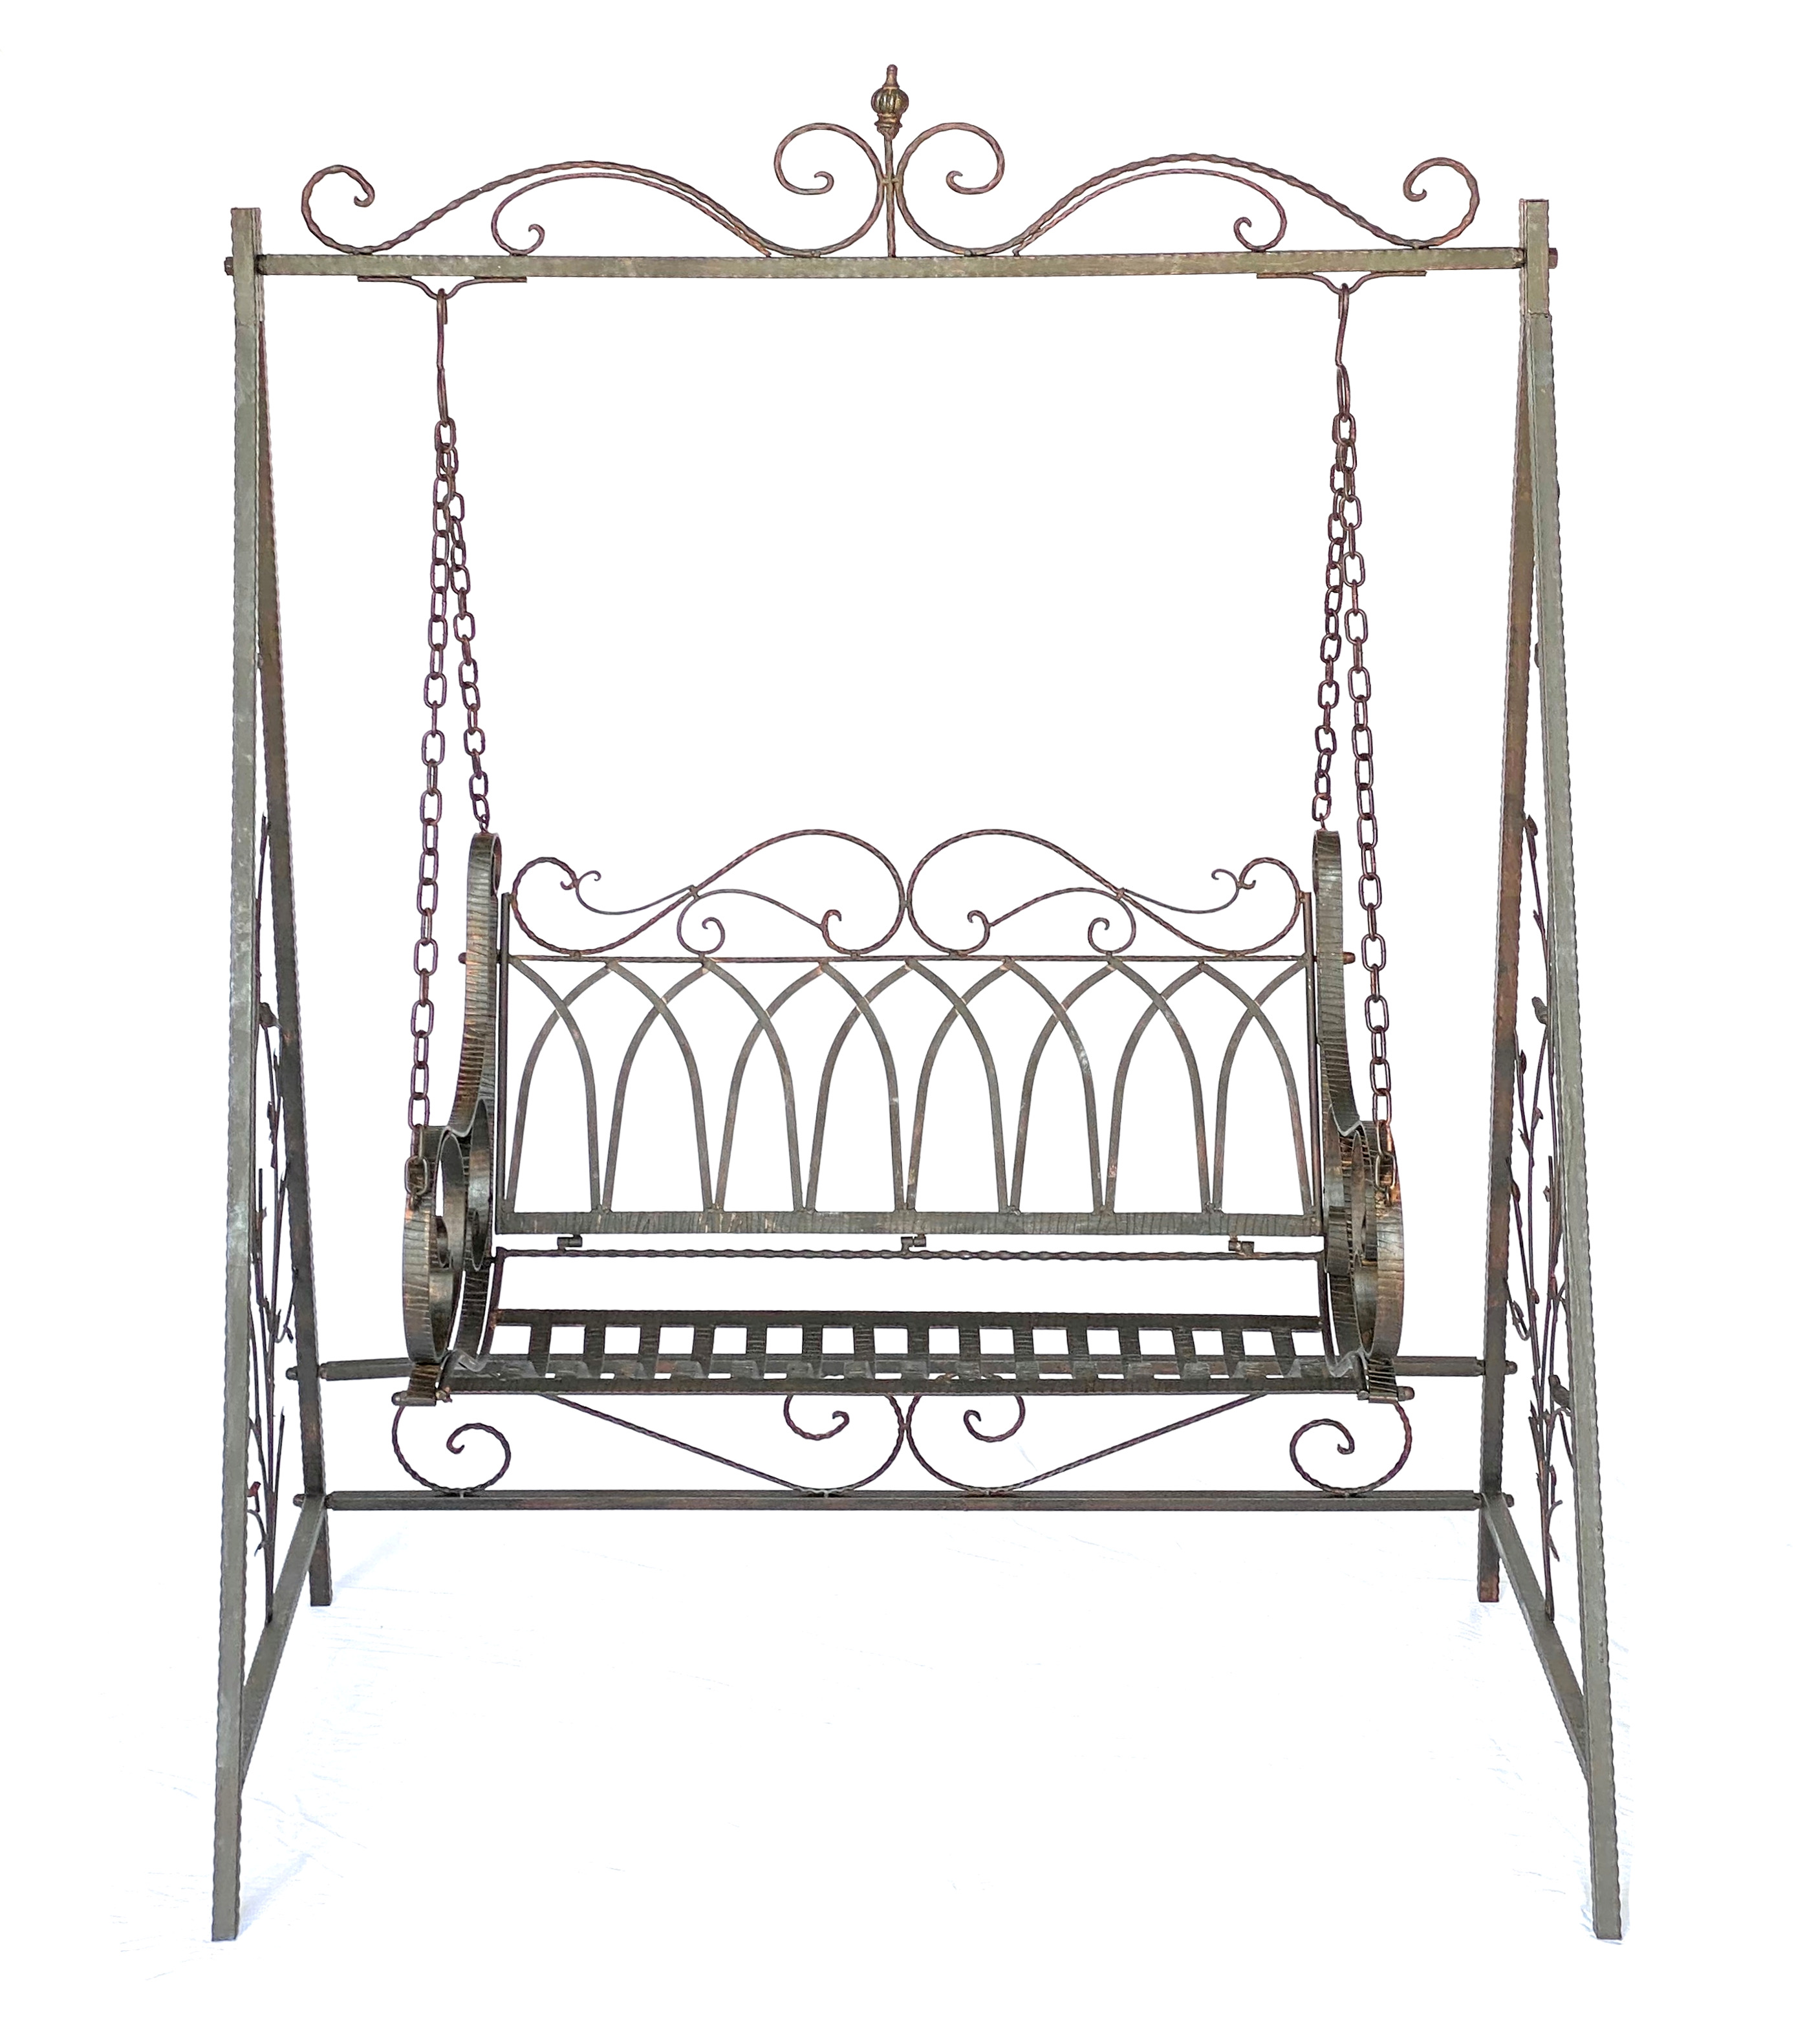 schaukel hollywoodschaukel 18688 mit ketten metall schmiedeeisen gartenschaukel. Black Bedroom Furniture Sets. Home Design Ideas